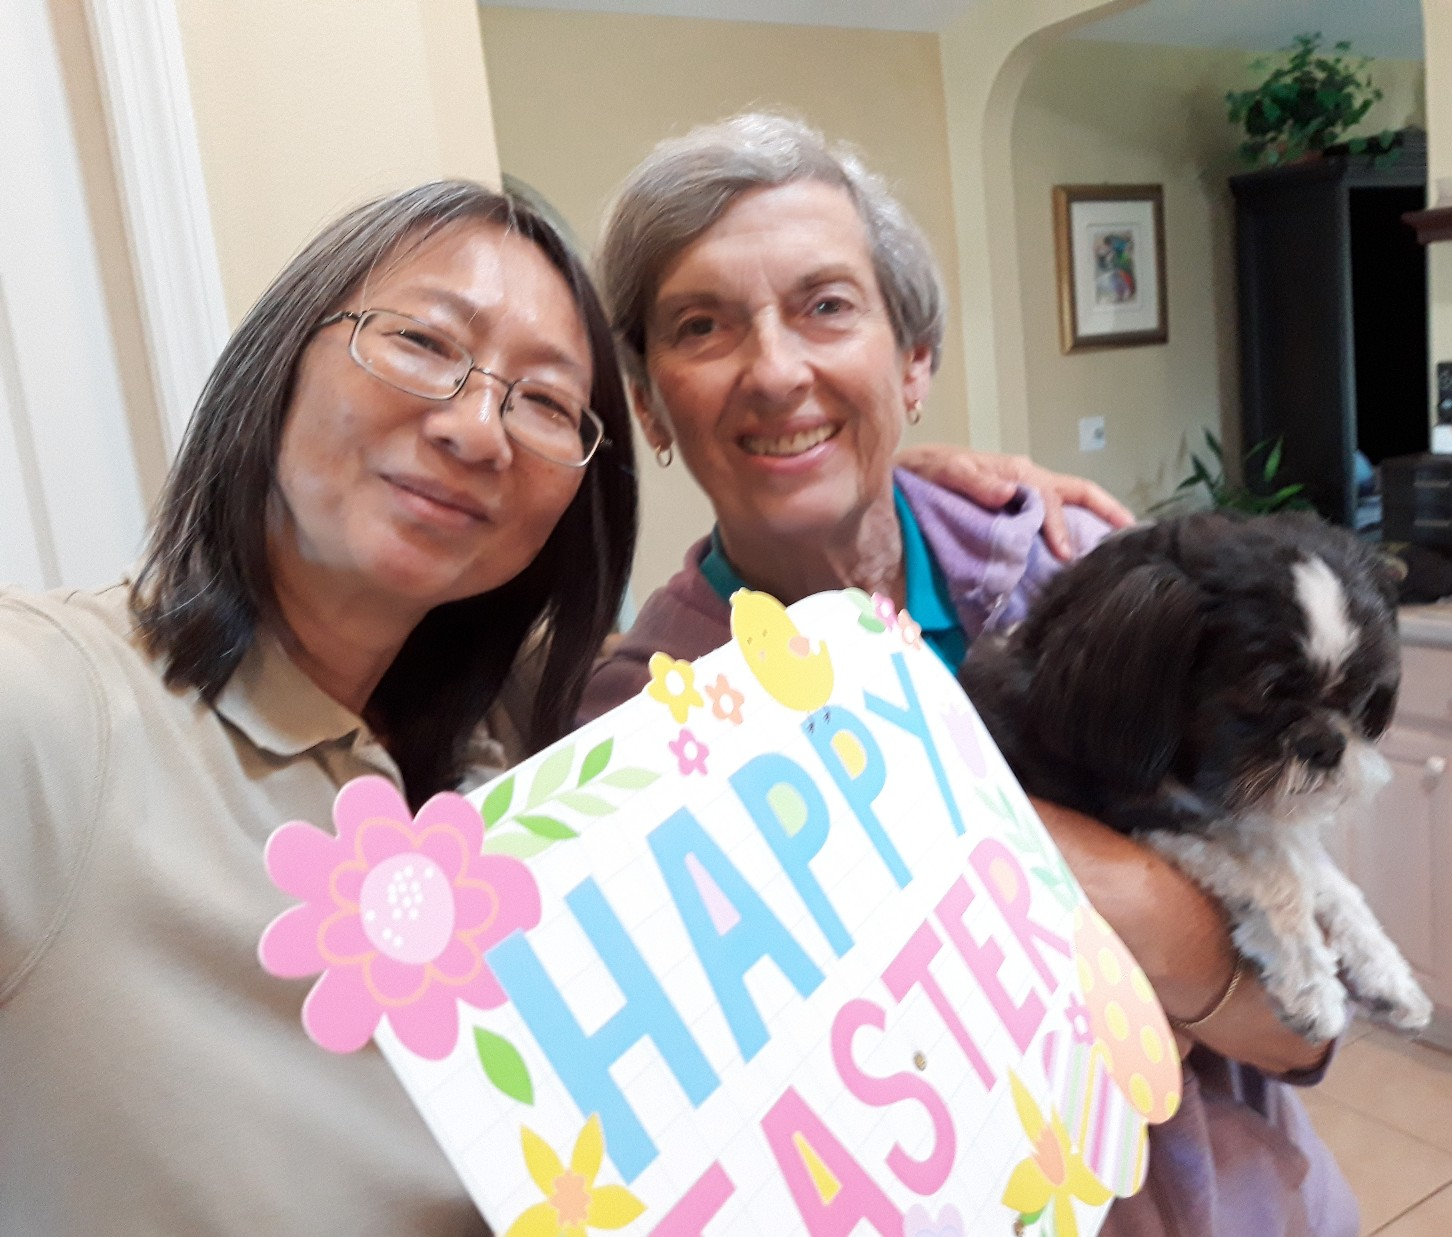 Happy Easter Mum. Pat and Stitches brought over a big Easter Basket with lots of chocolate. Now you can eat whatever you want. Love always. xoxo